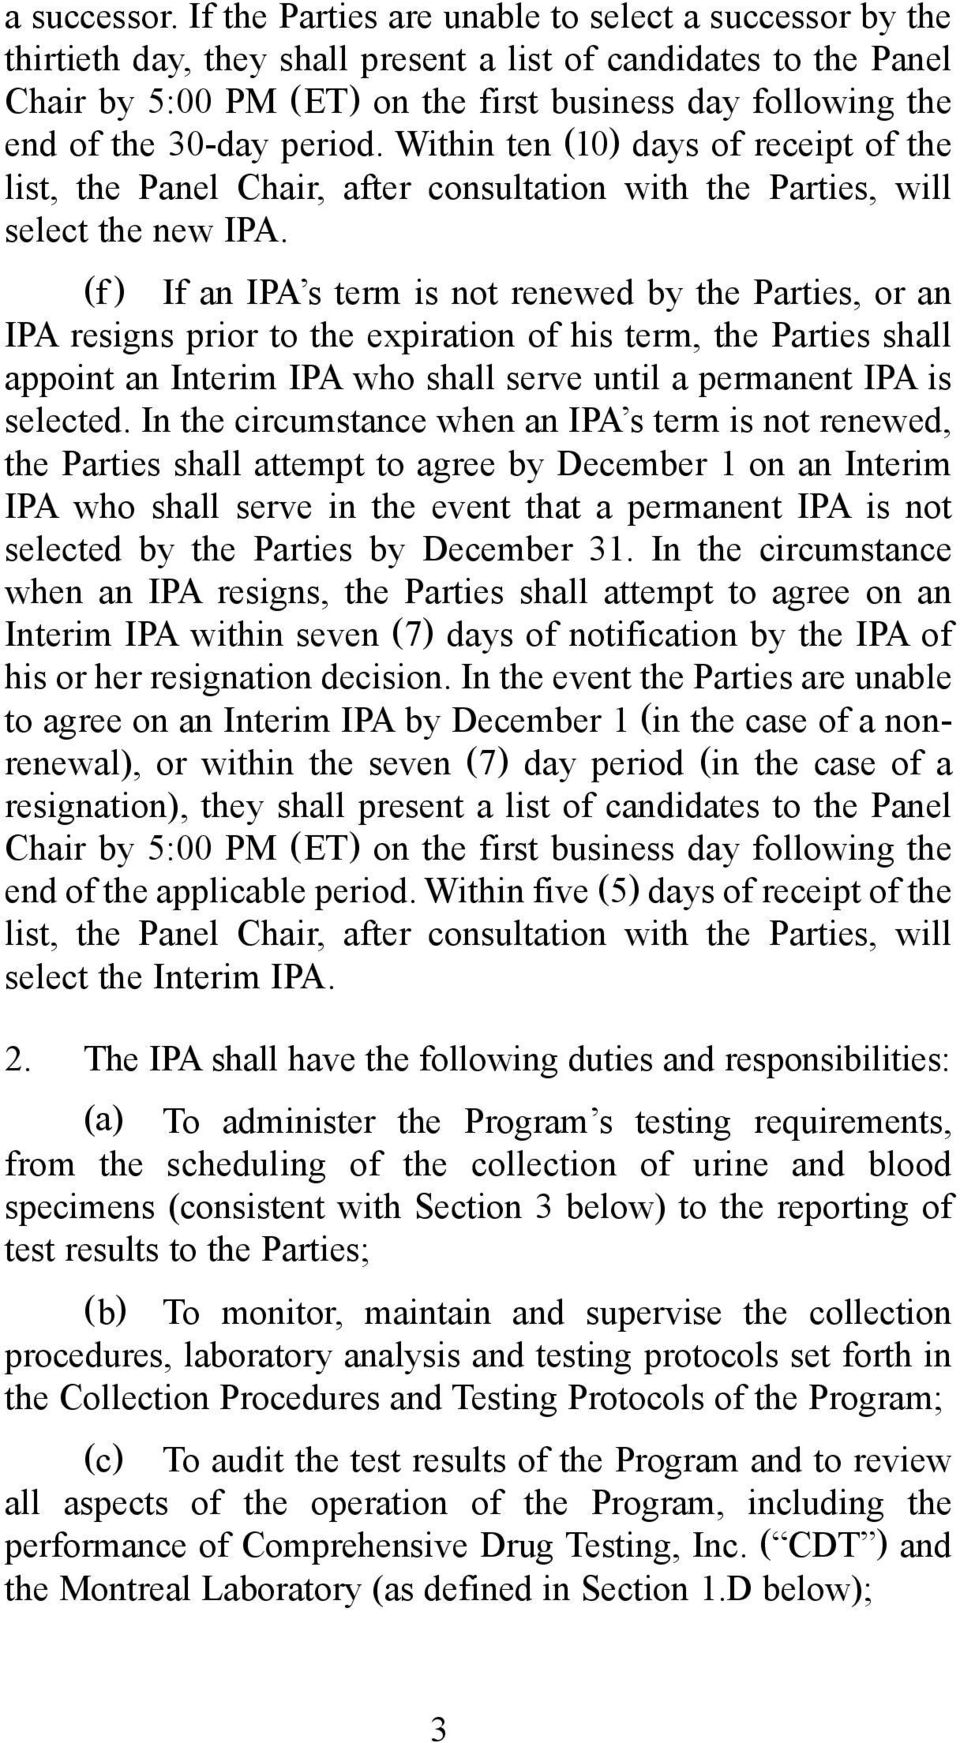 30-day period. Within ten (10) days of receipt of the list, the Panel Chair, after consultation with the Parties, will select the new IPA.